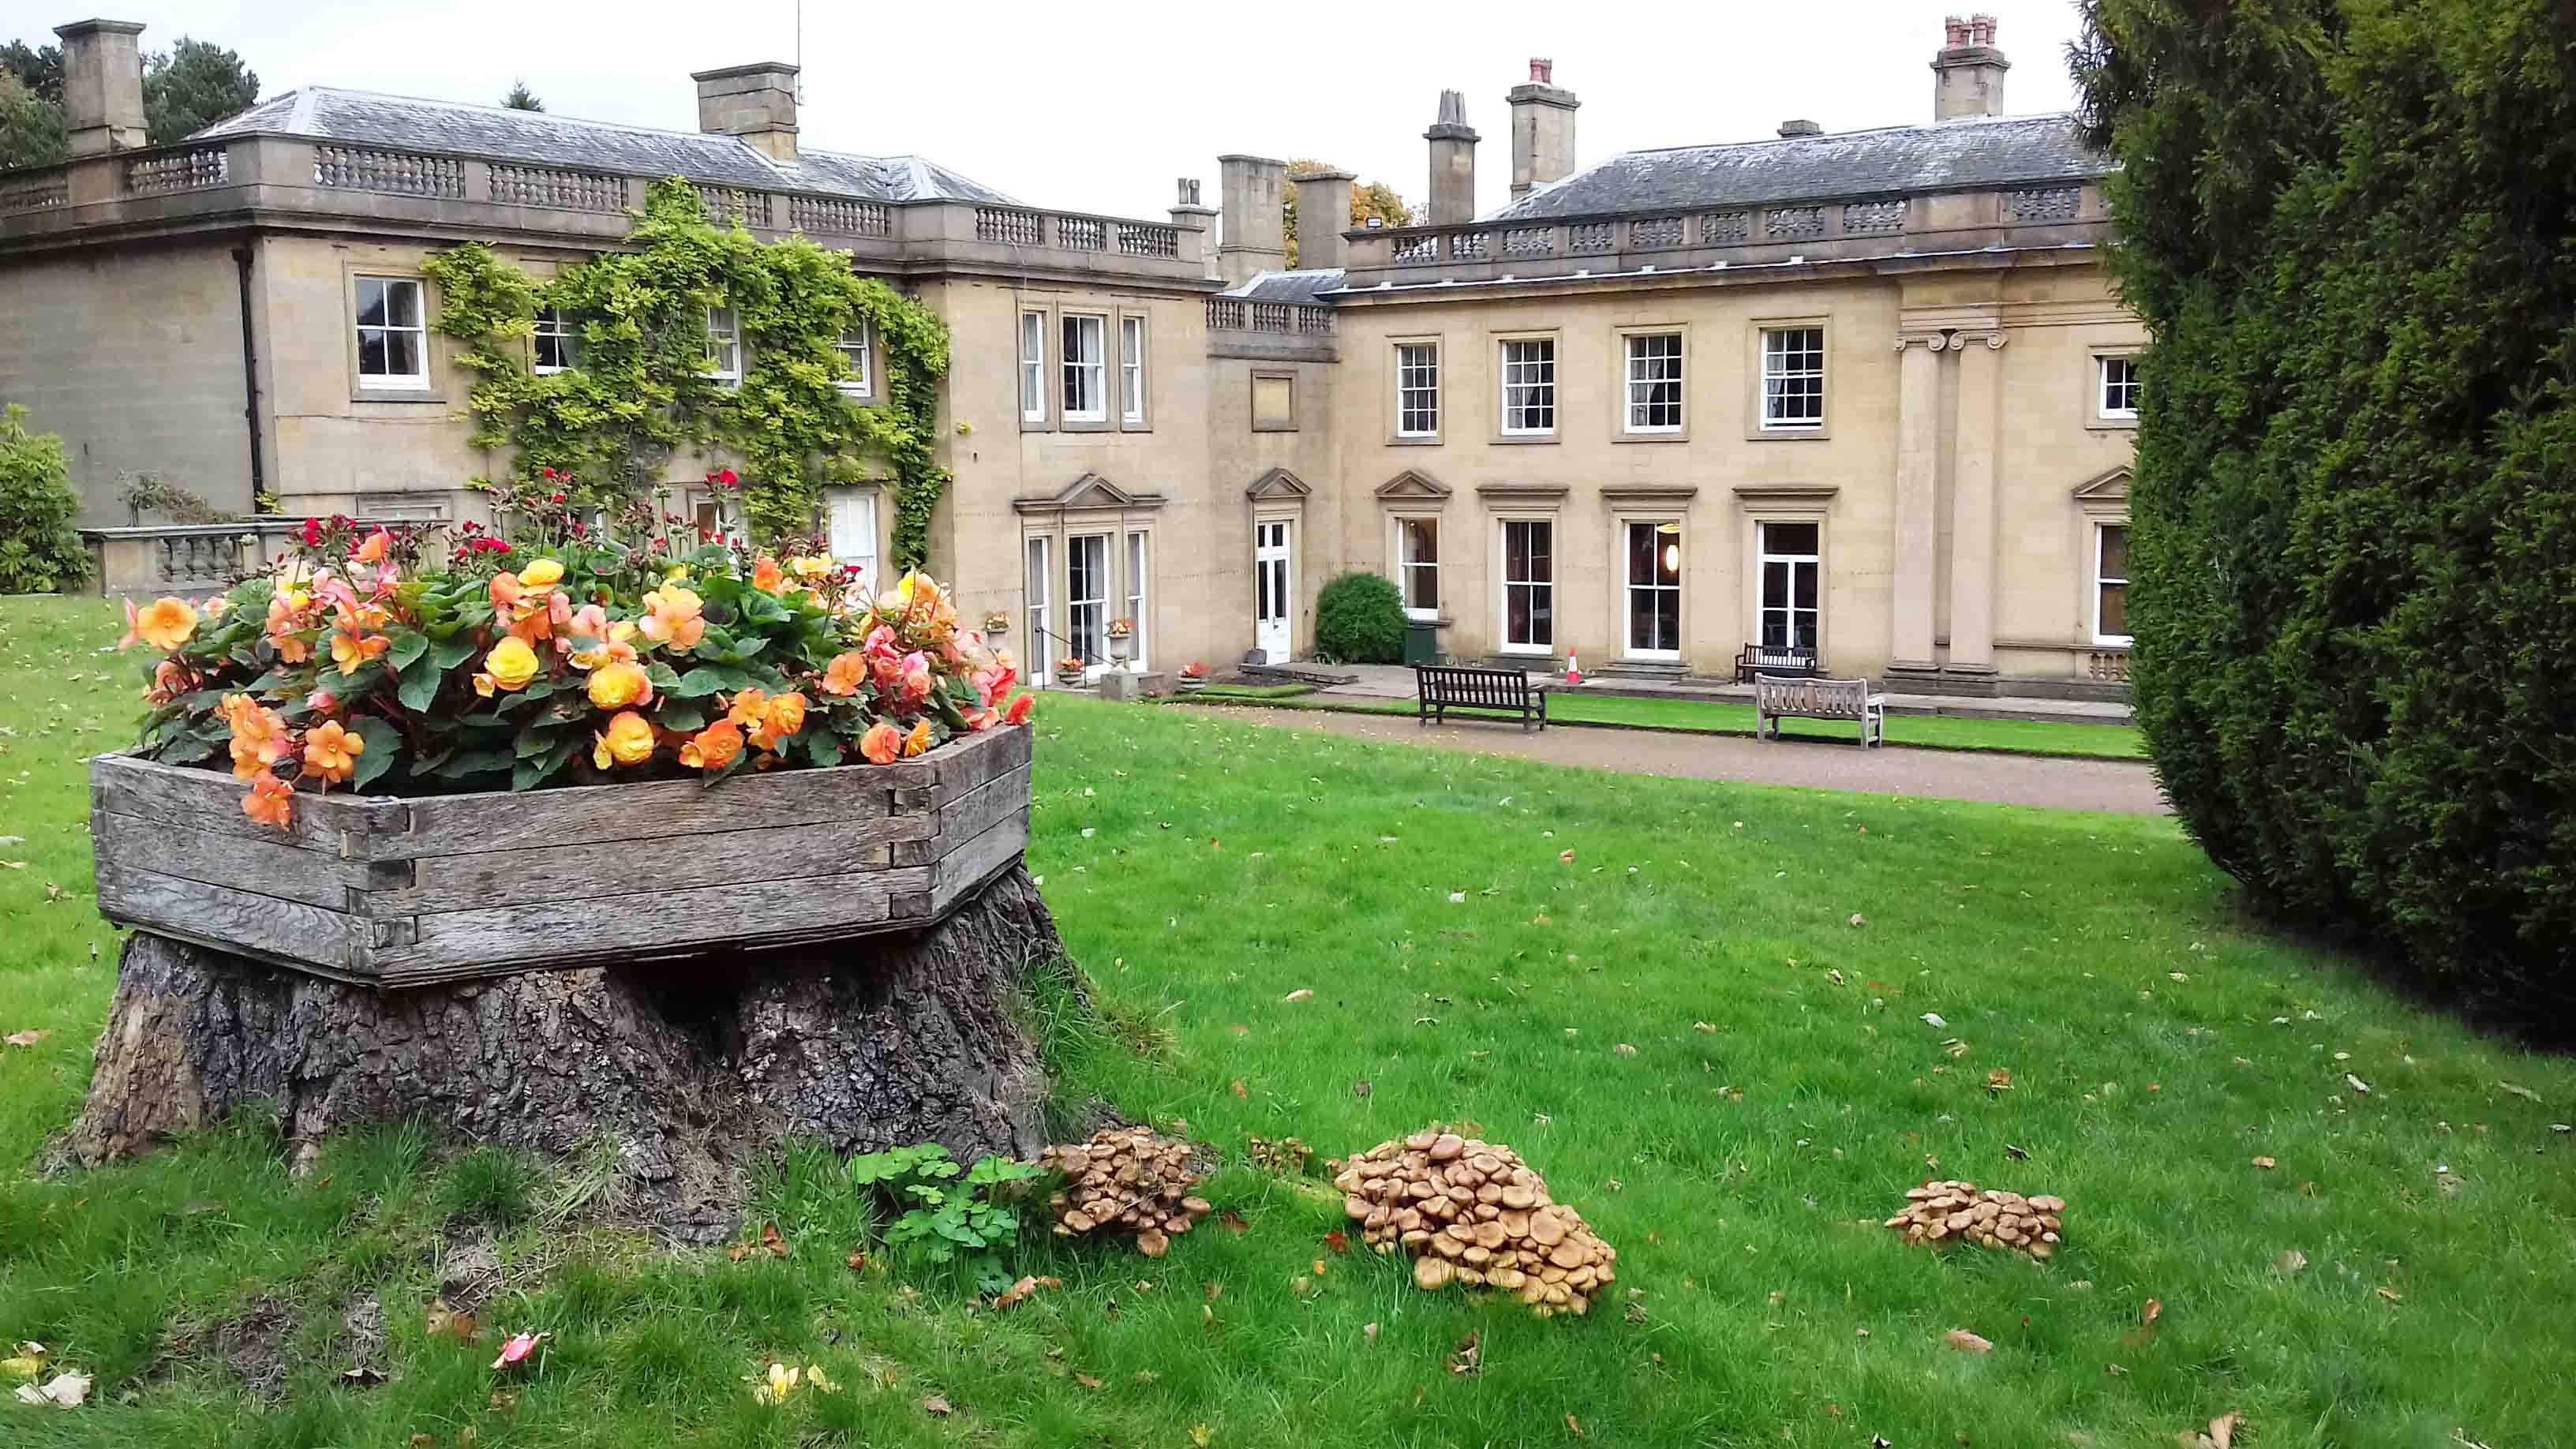 Armillaria at Wortley Hall, South Yorkshire (2).jpg